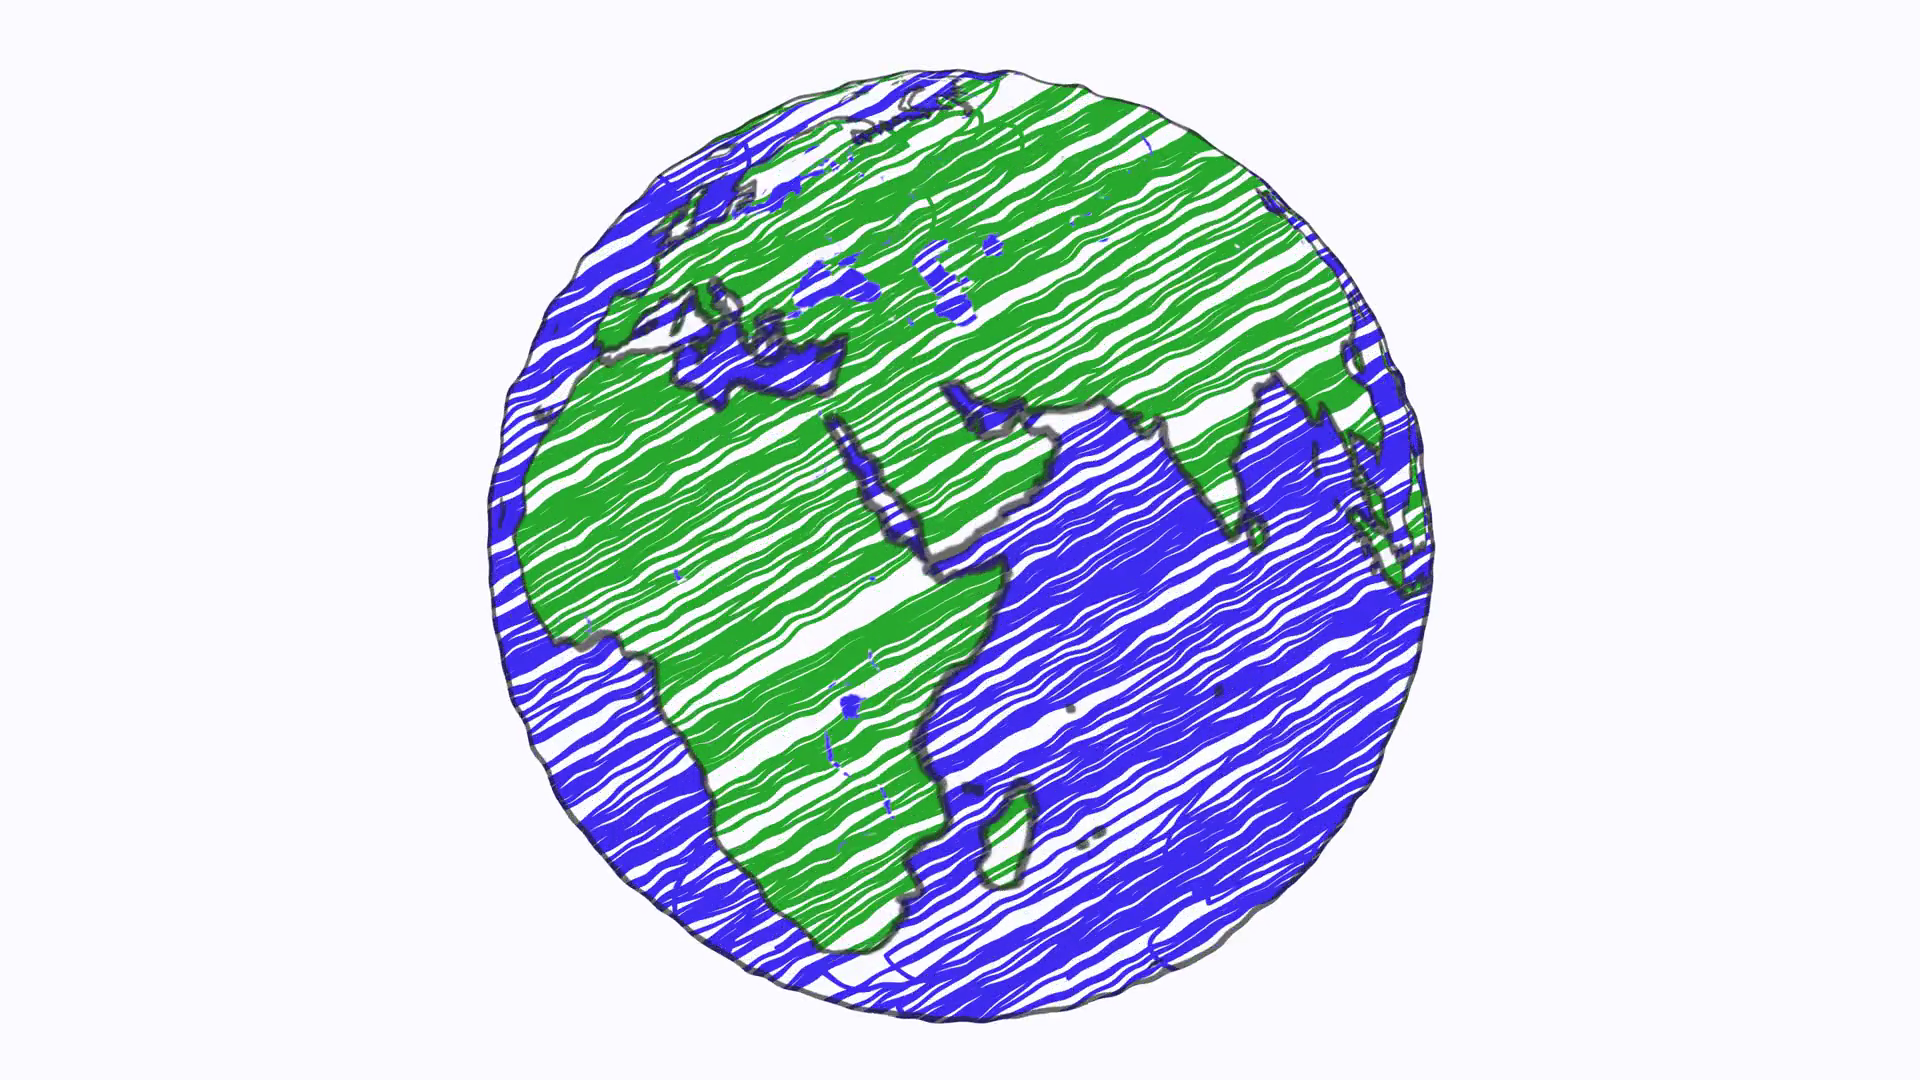 1920x1080 Earth Drawing Paper Cartoon Hand Drawn Animation Spinning Globe